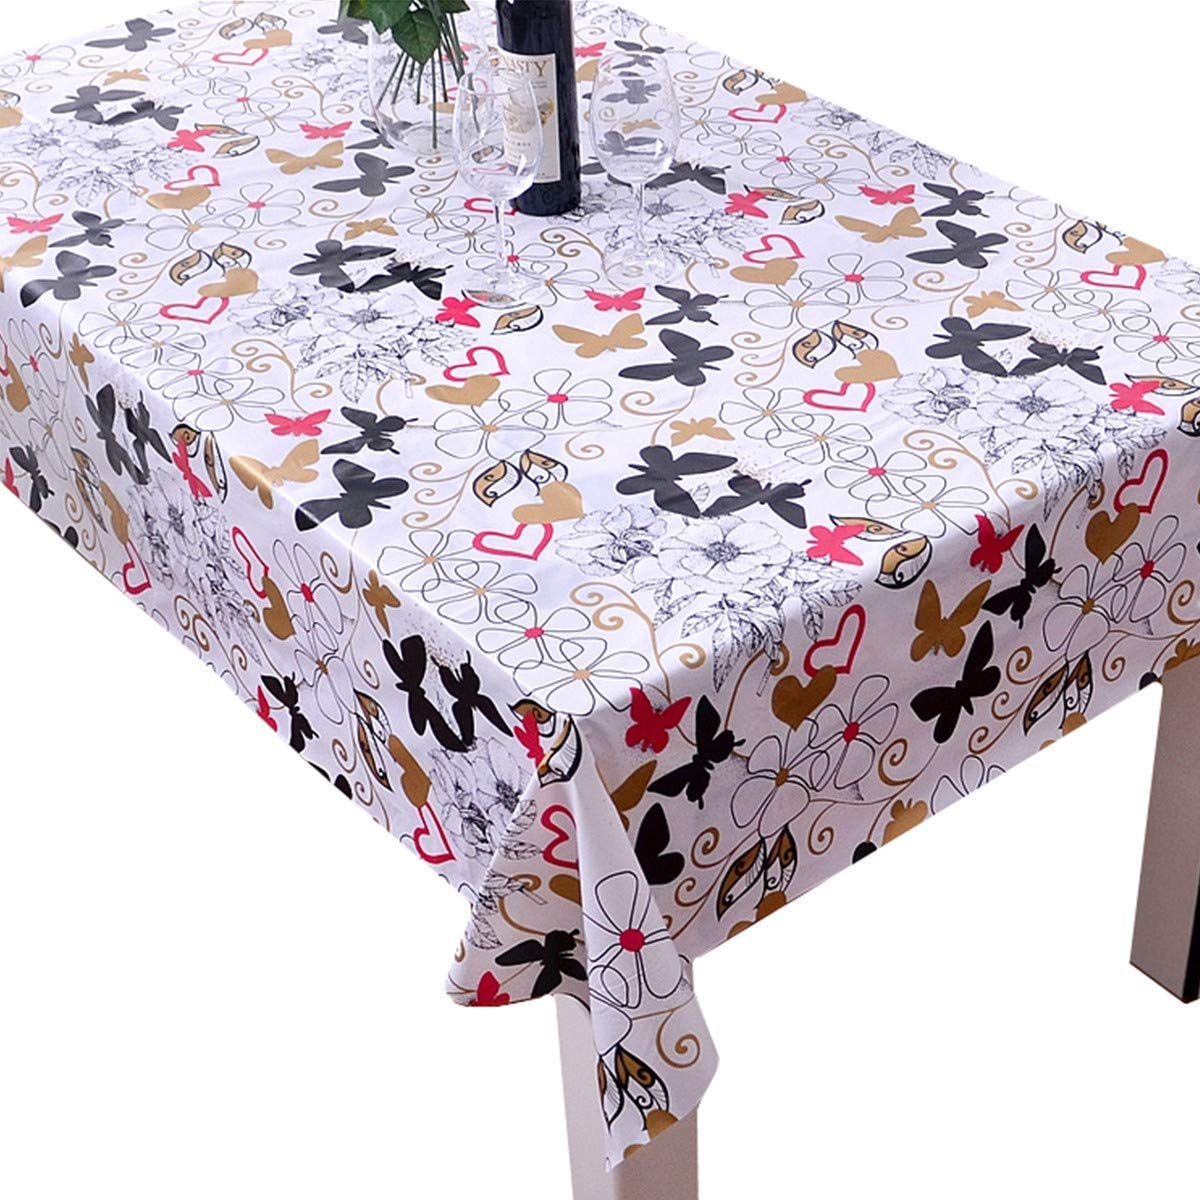 Bettery Home Vinyl Tablecloth Rectangle Wipe Clean Table Cover Waterproof Stain Resistant Oil Proof Non-Slip for Outdoor/Indoor/Kitchen use (54 x 82 inch, Red Butterfly)